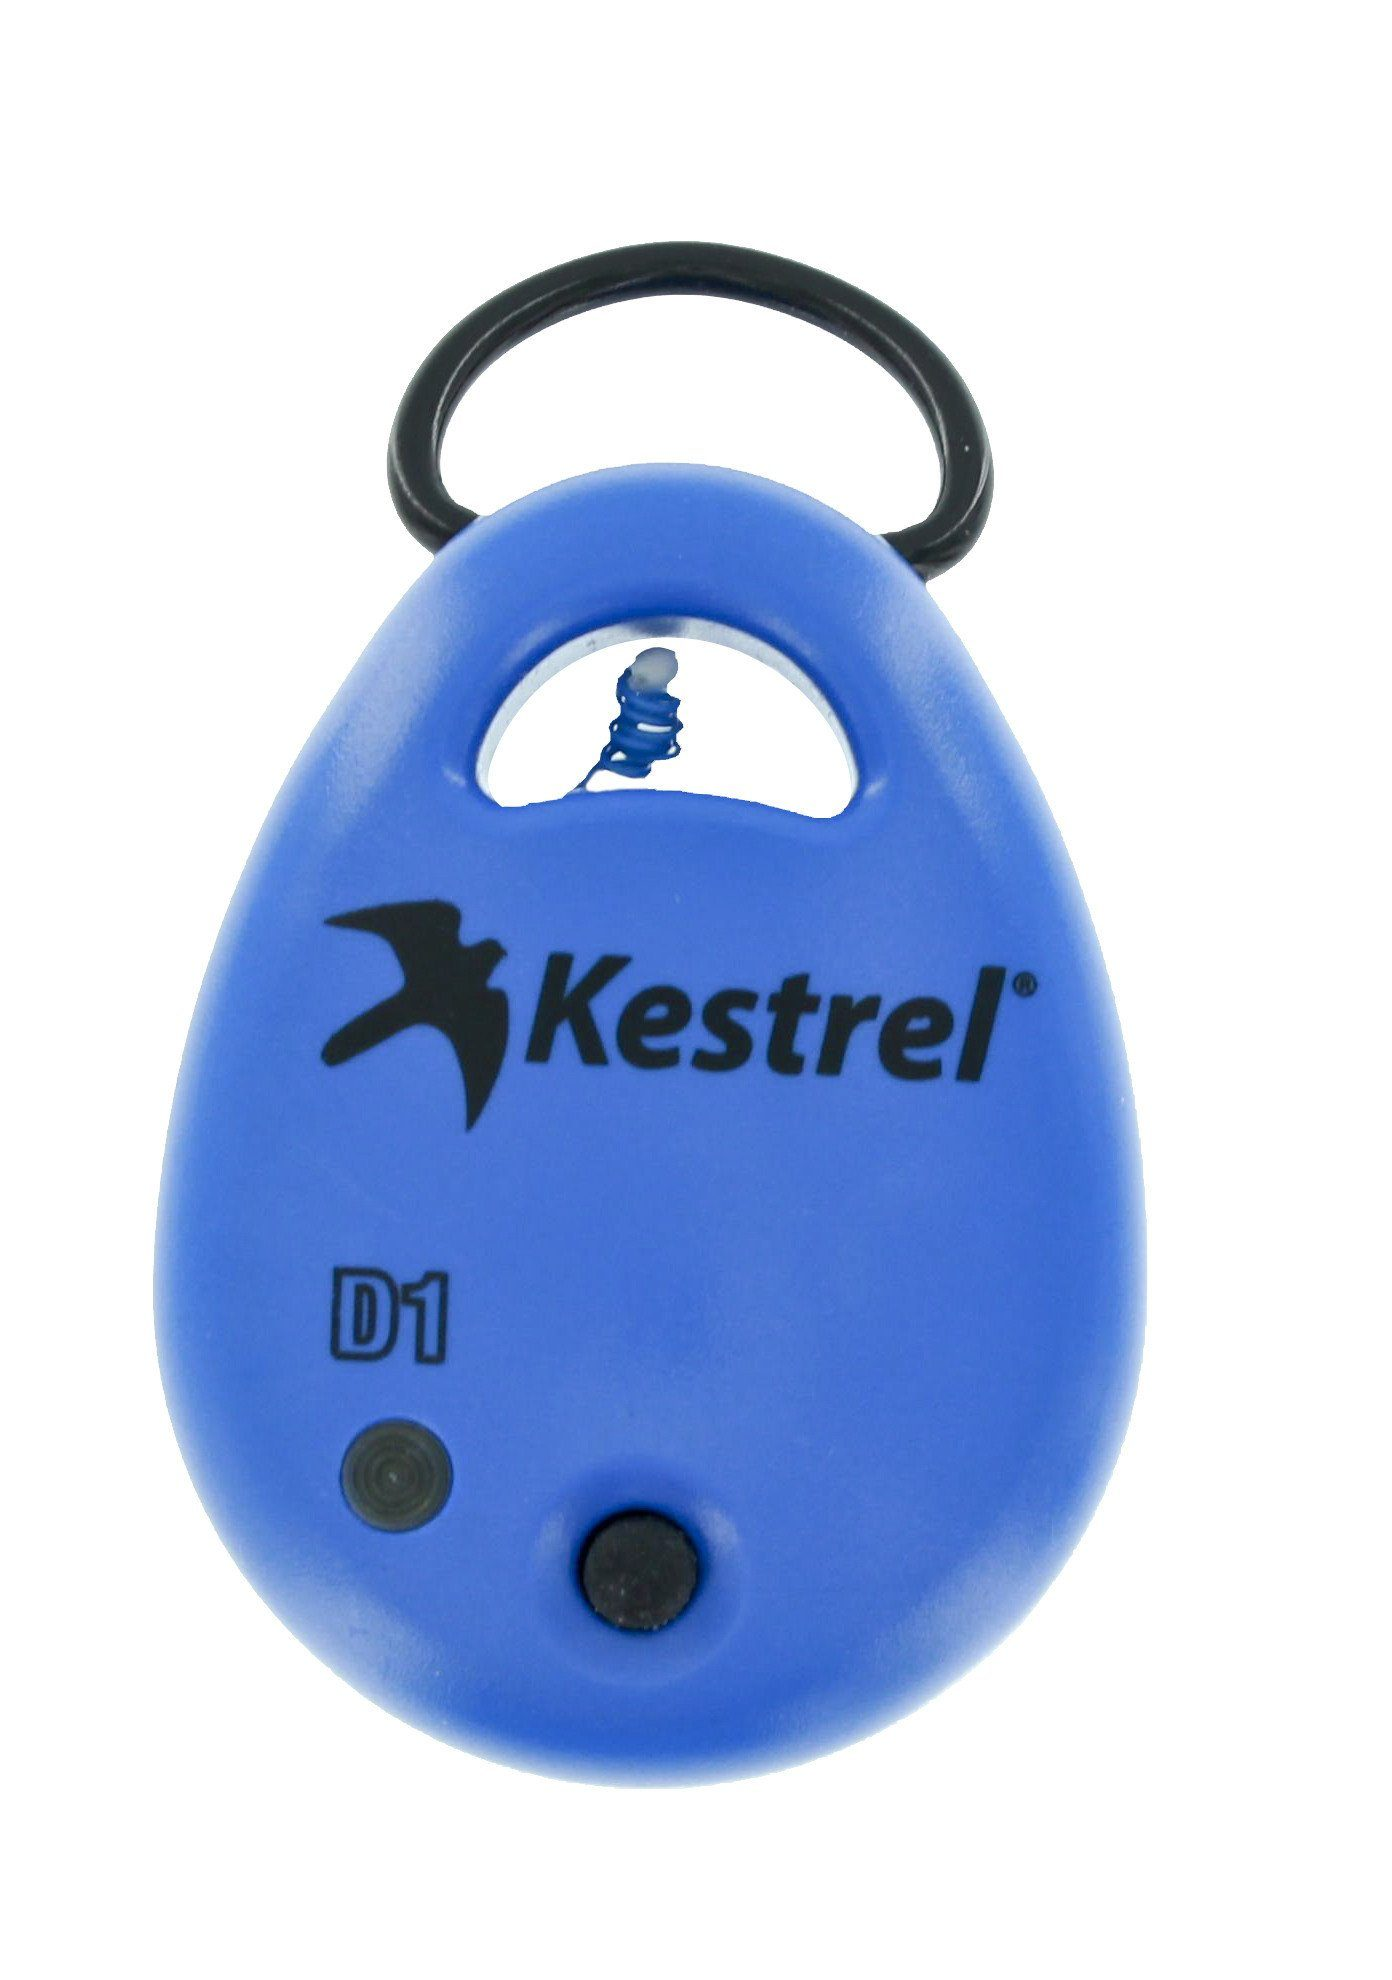 The Kestrel D1 DROP is named 2015 Editors Choice at Backpacker Magazine!